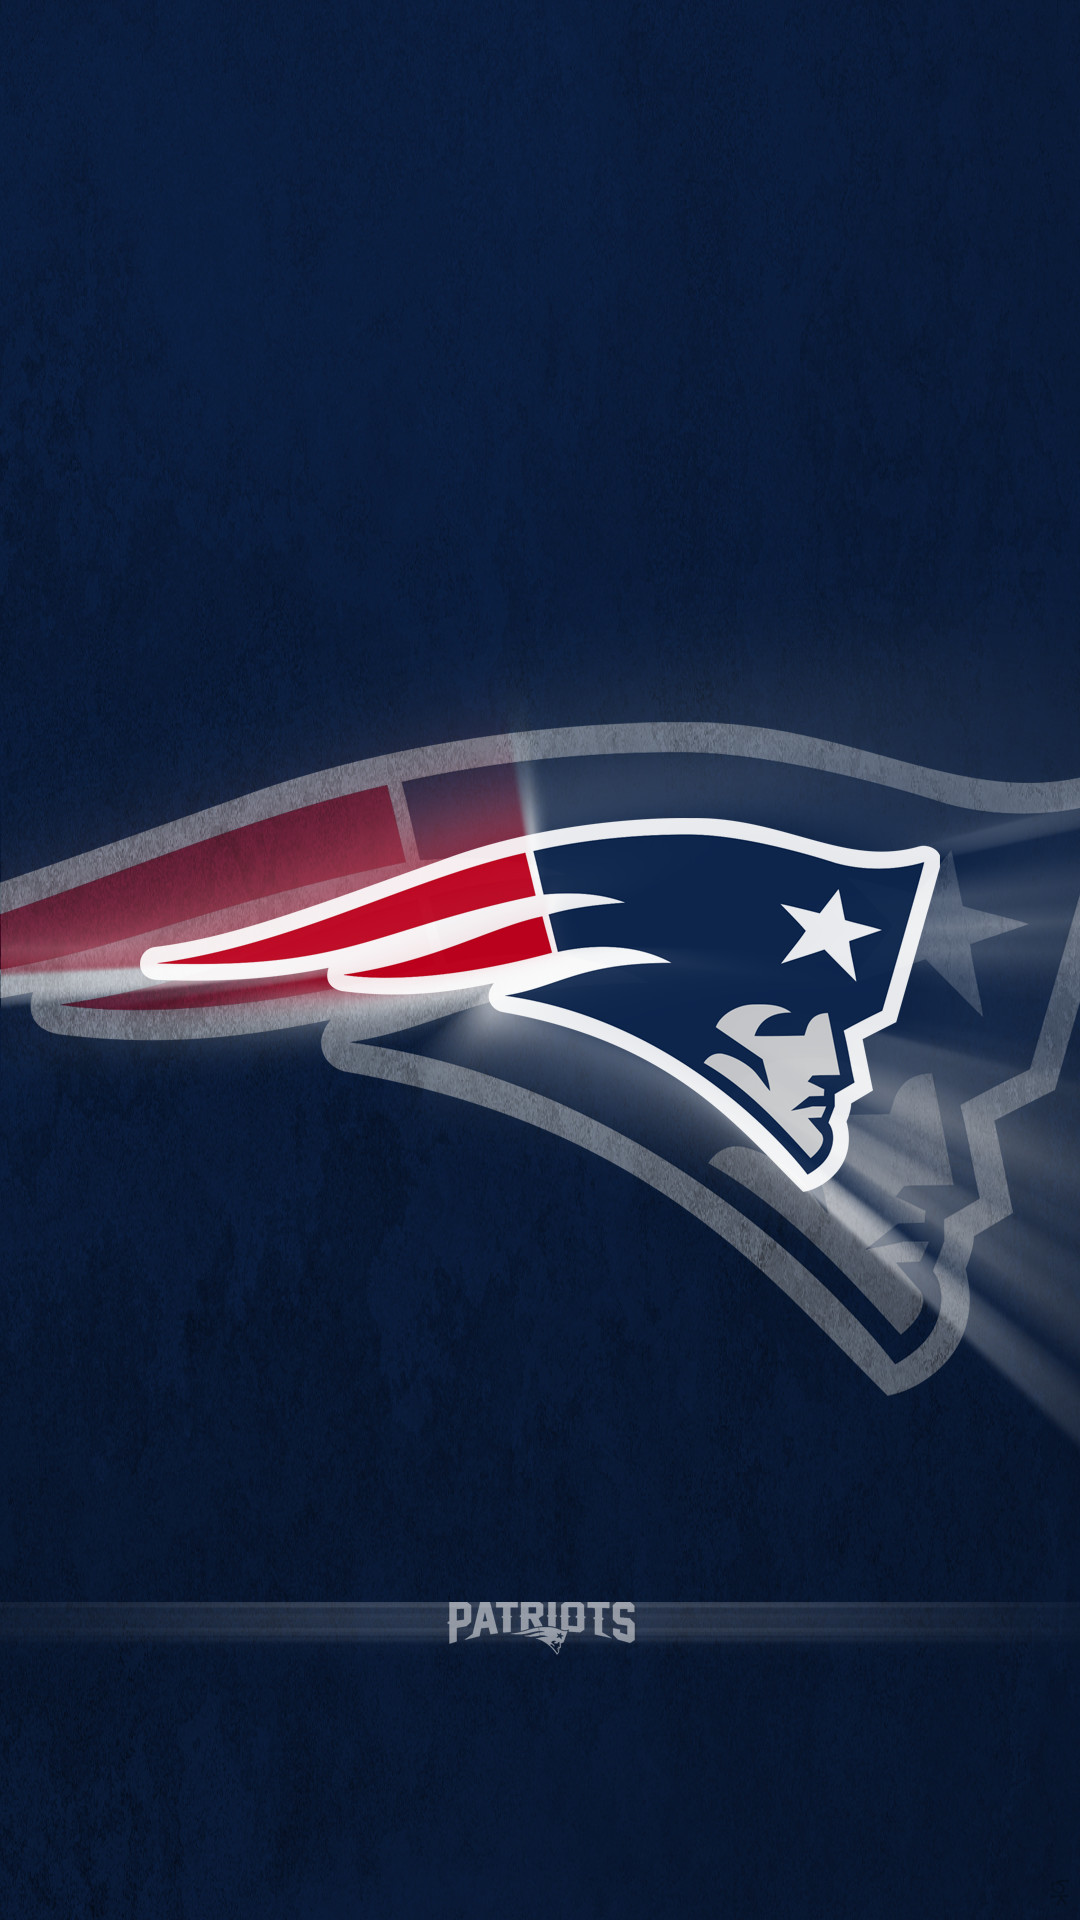 Superbowl XLIX wallpapers for iPhone and iPad